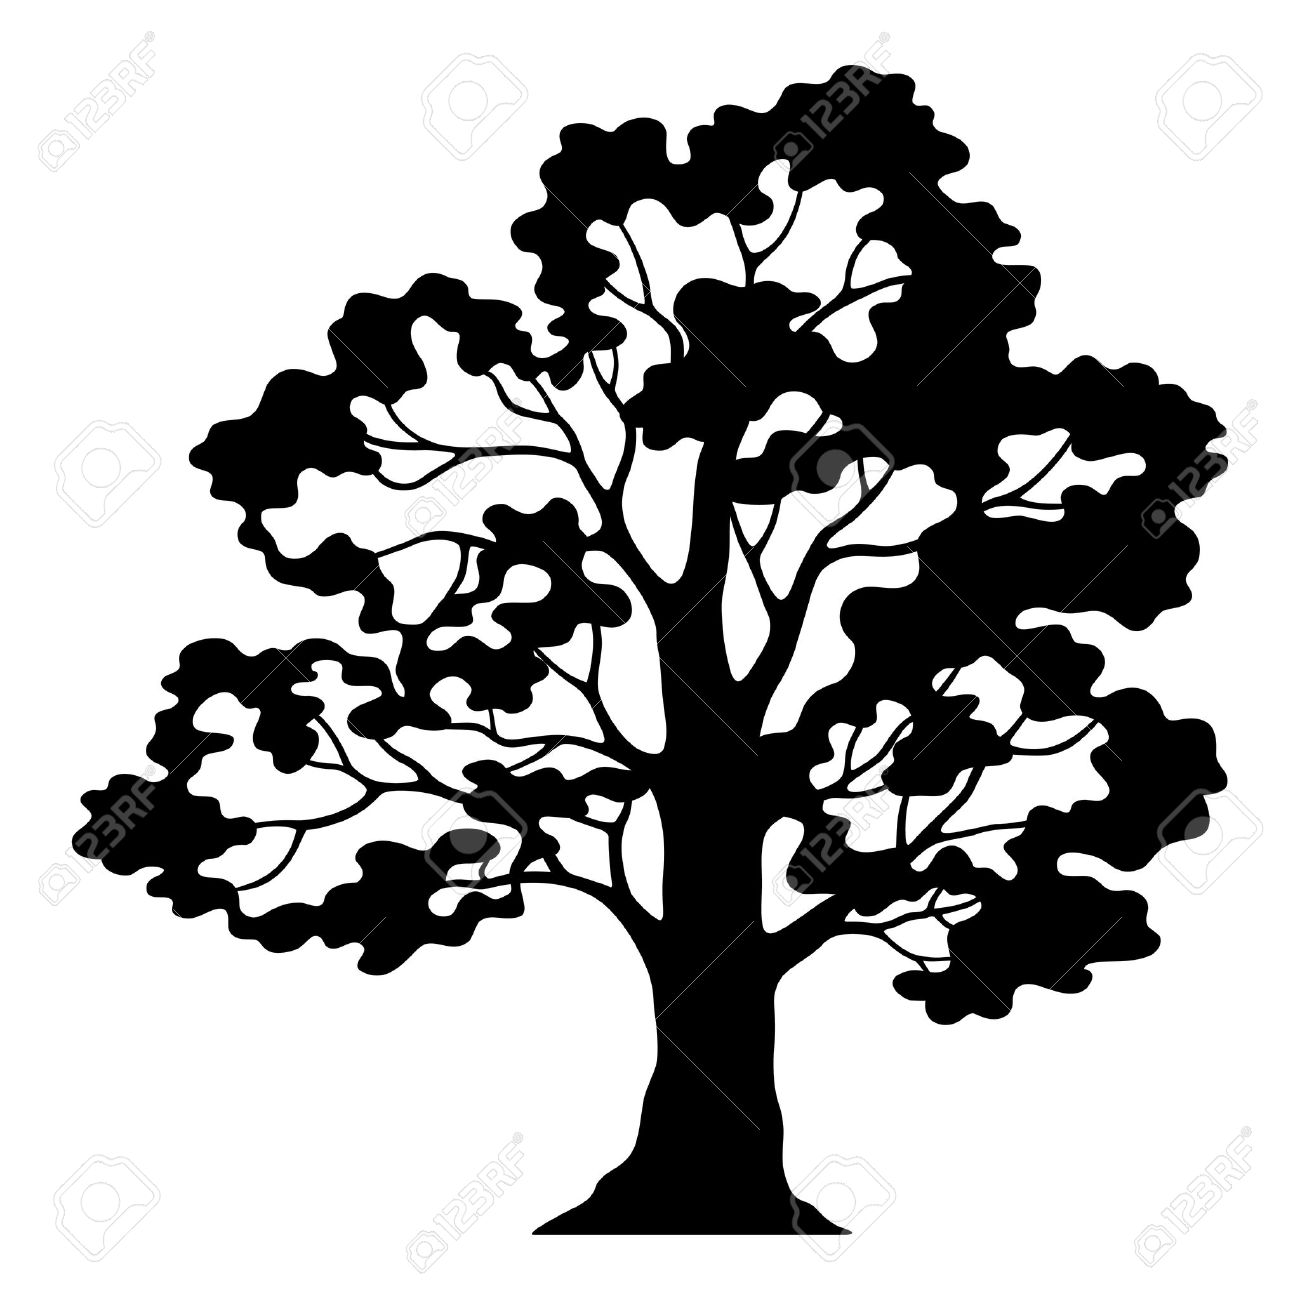 winter tree silhouette clip art at getdrawings com free for rh getdrawings com Pine Tree Silhouette Clip Art Willow Tree Silhouette Clip Art